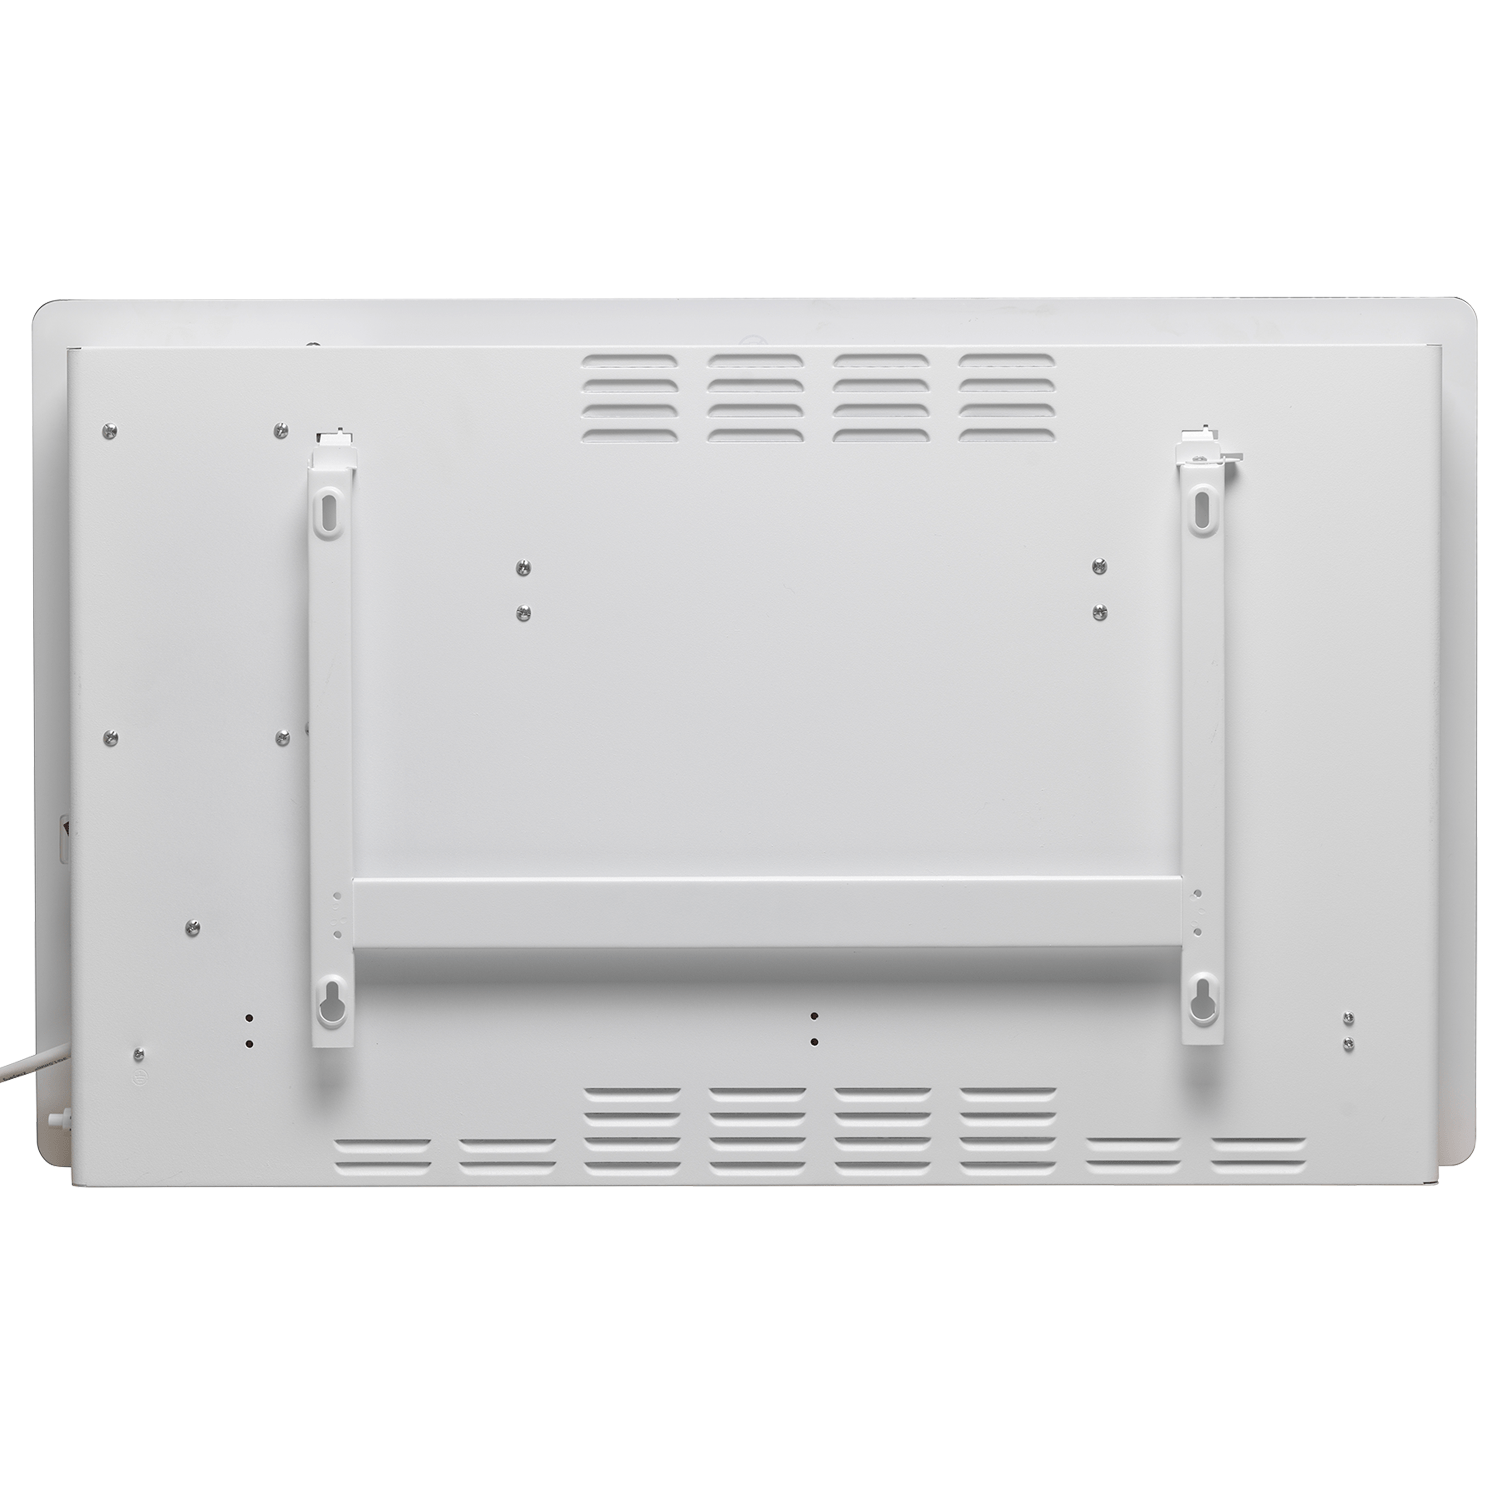 Vitra WiFi Electric Panel Heater, Wall Mounted or Portable 9